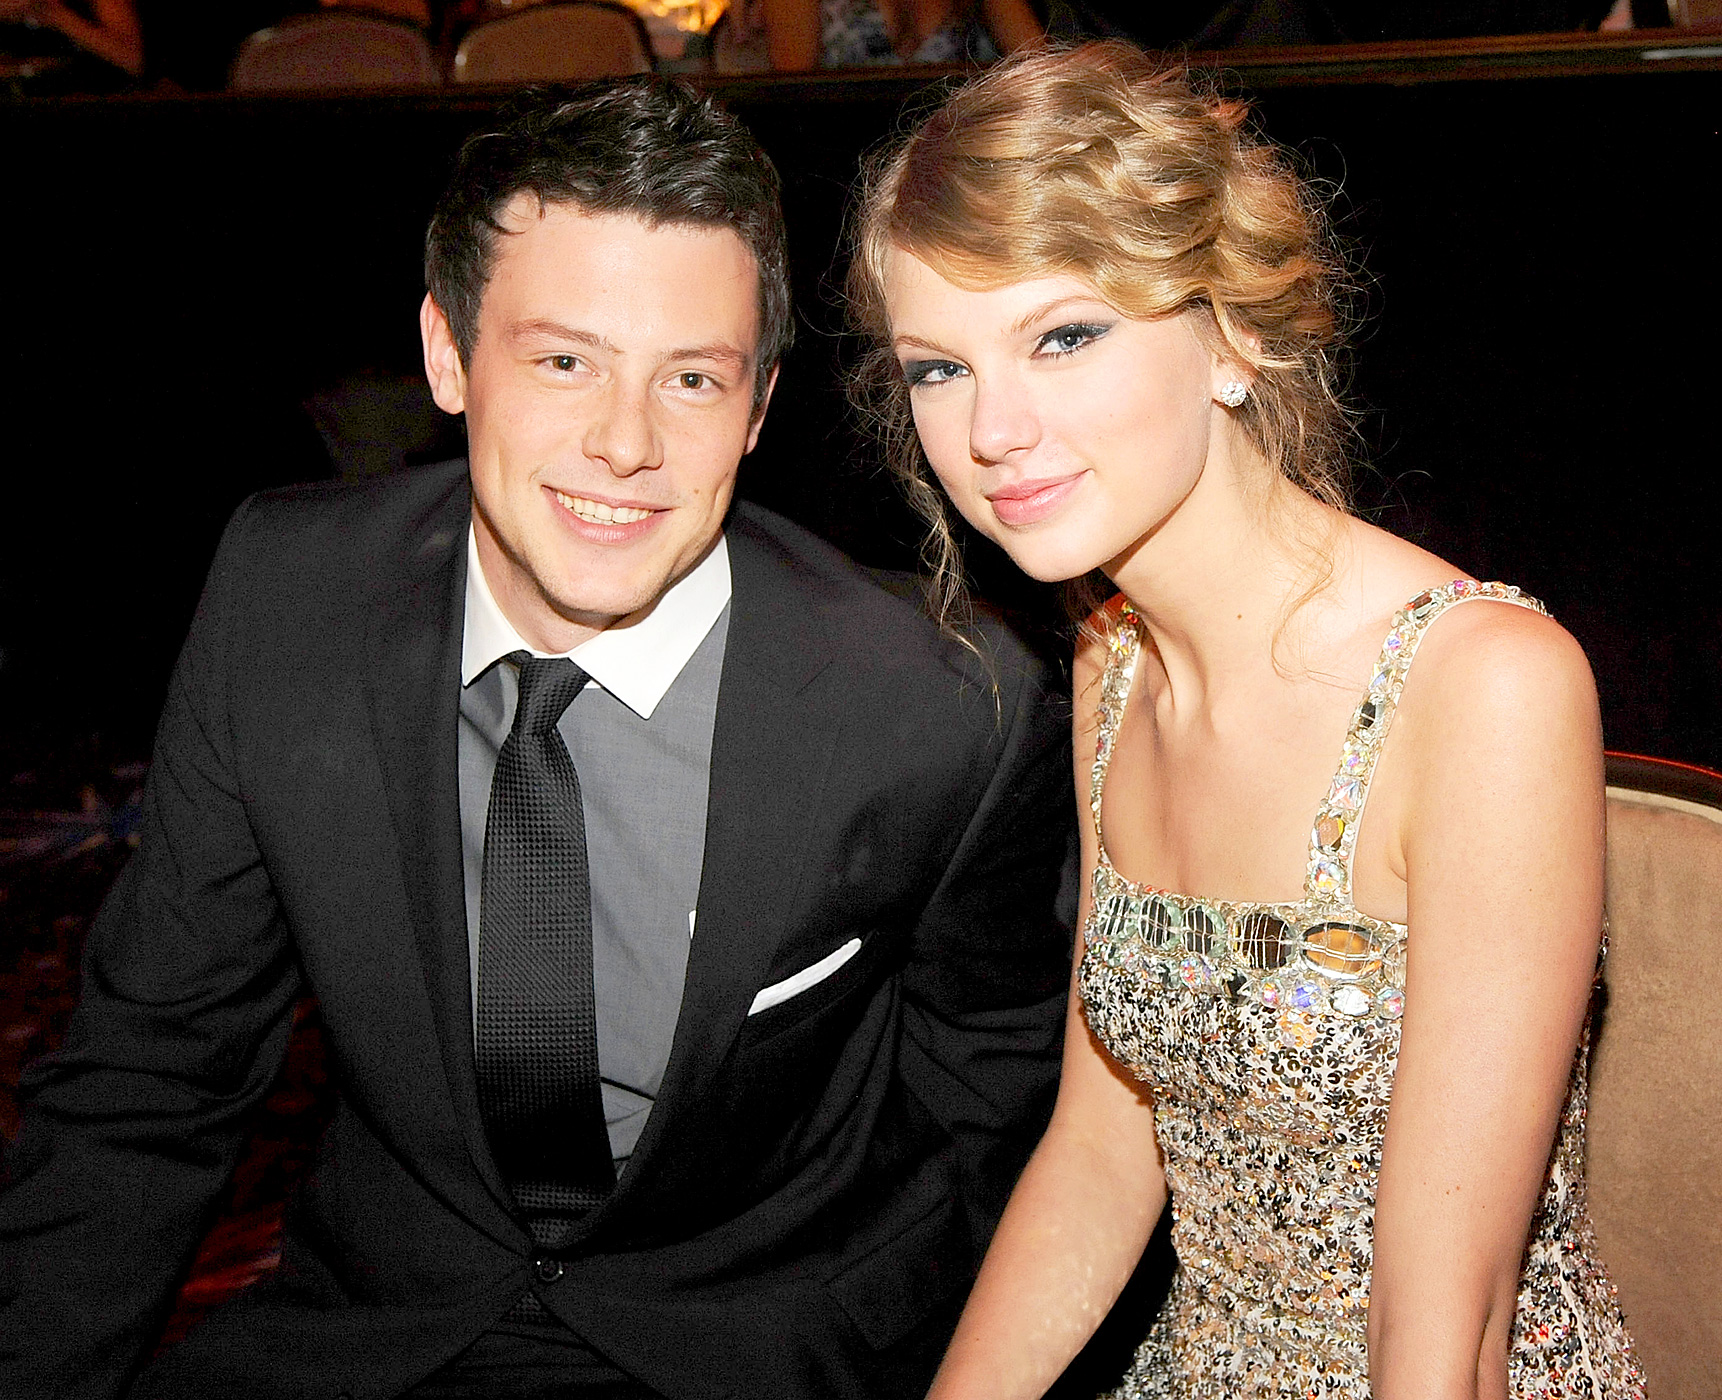 Swift was spotted hanging with the Glee star — who once told Us that she was his celebrity crush — at Pinz Bowling Alley in March 2010. The two also spent time together at a January Grammy party and shared a late-night dinner in February 2011.